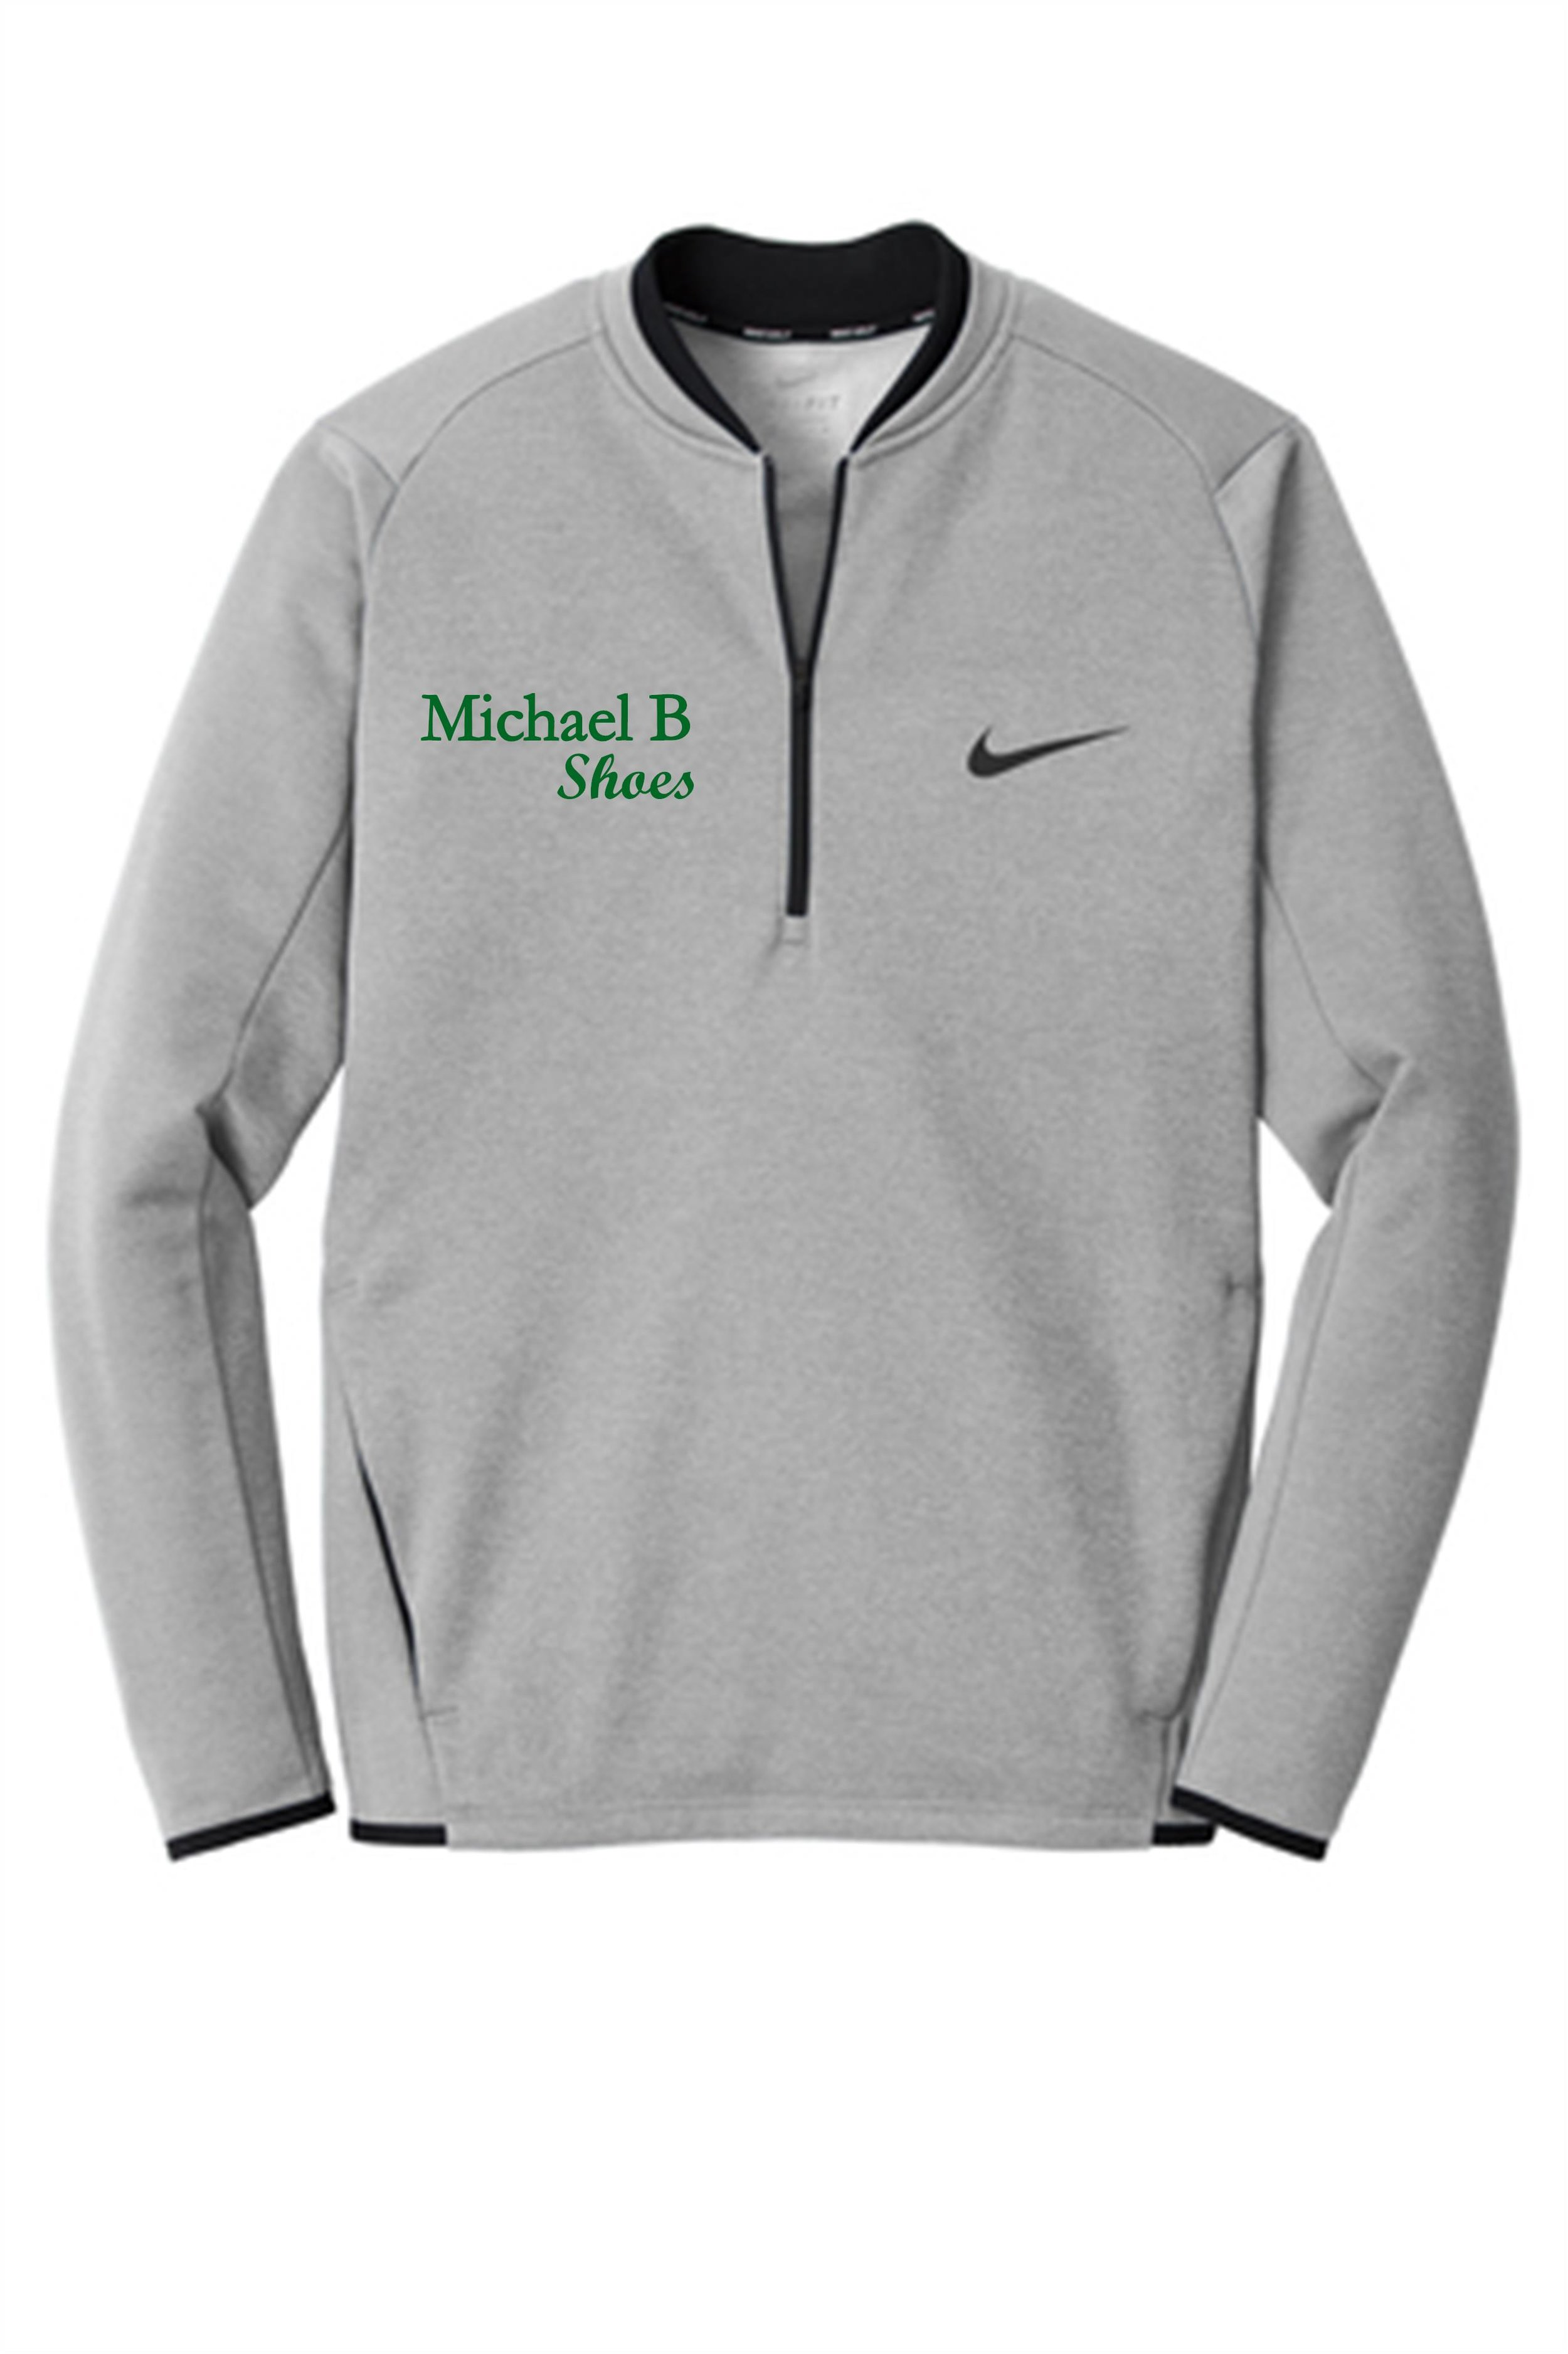 MBS Nike Grey Pullover.jpeg